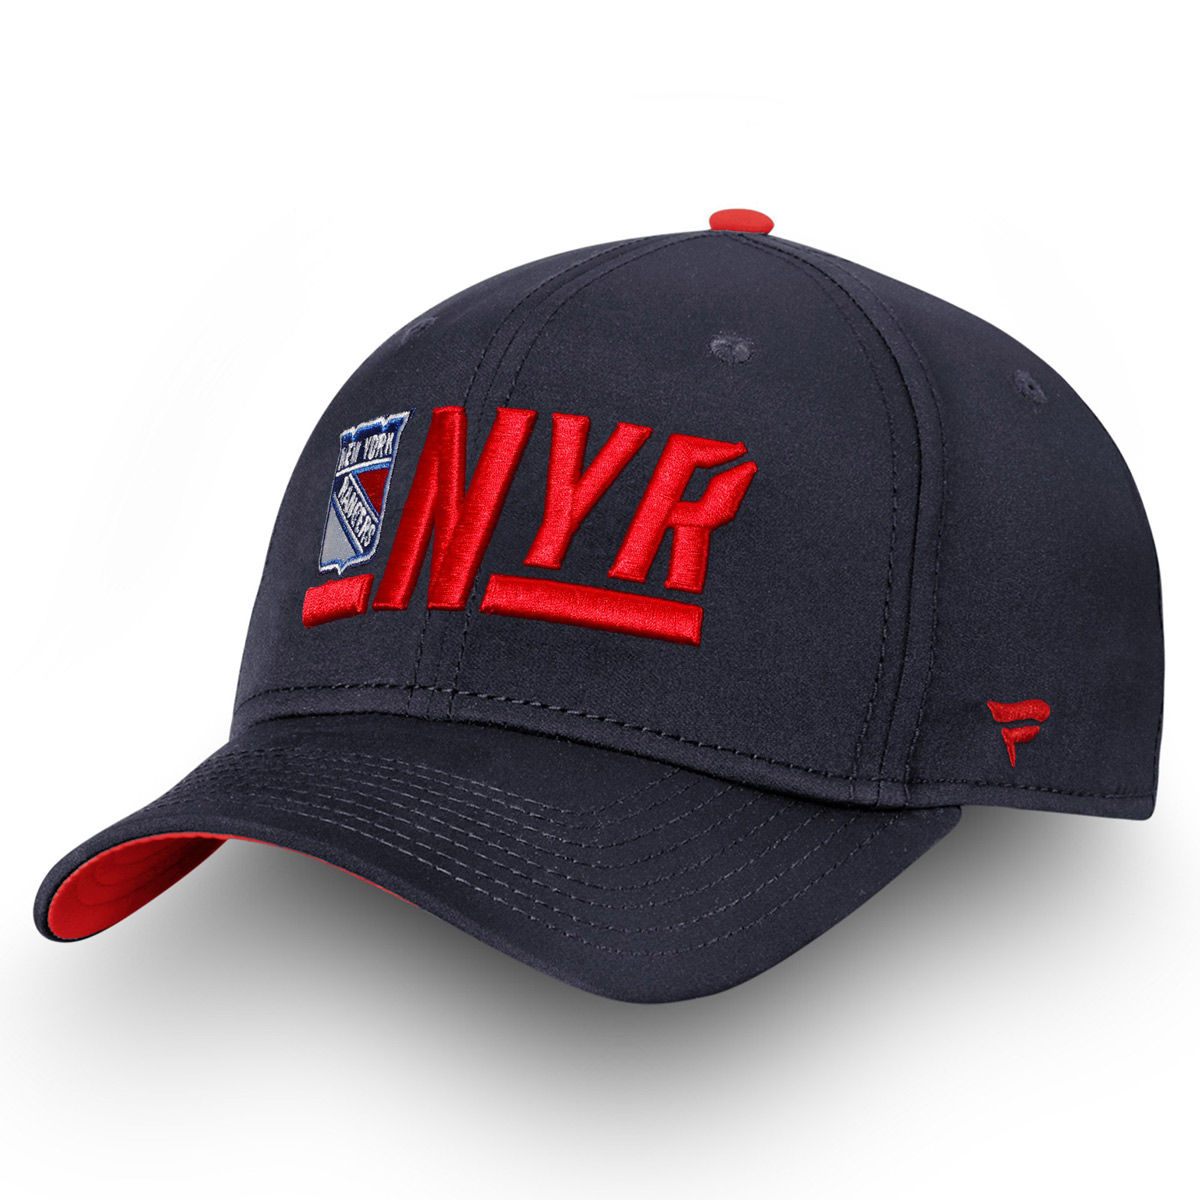 New York Rangers Authentic Pro Adjustable Hat